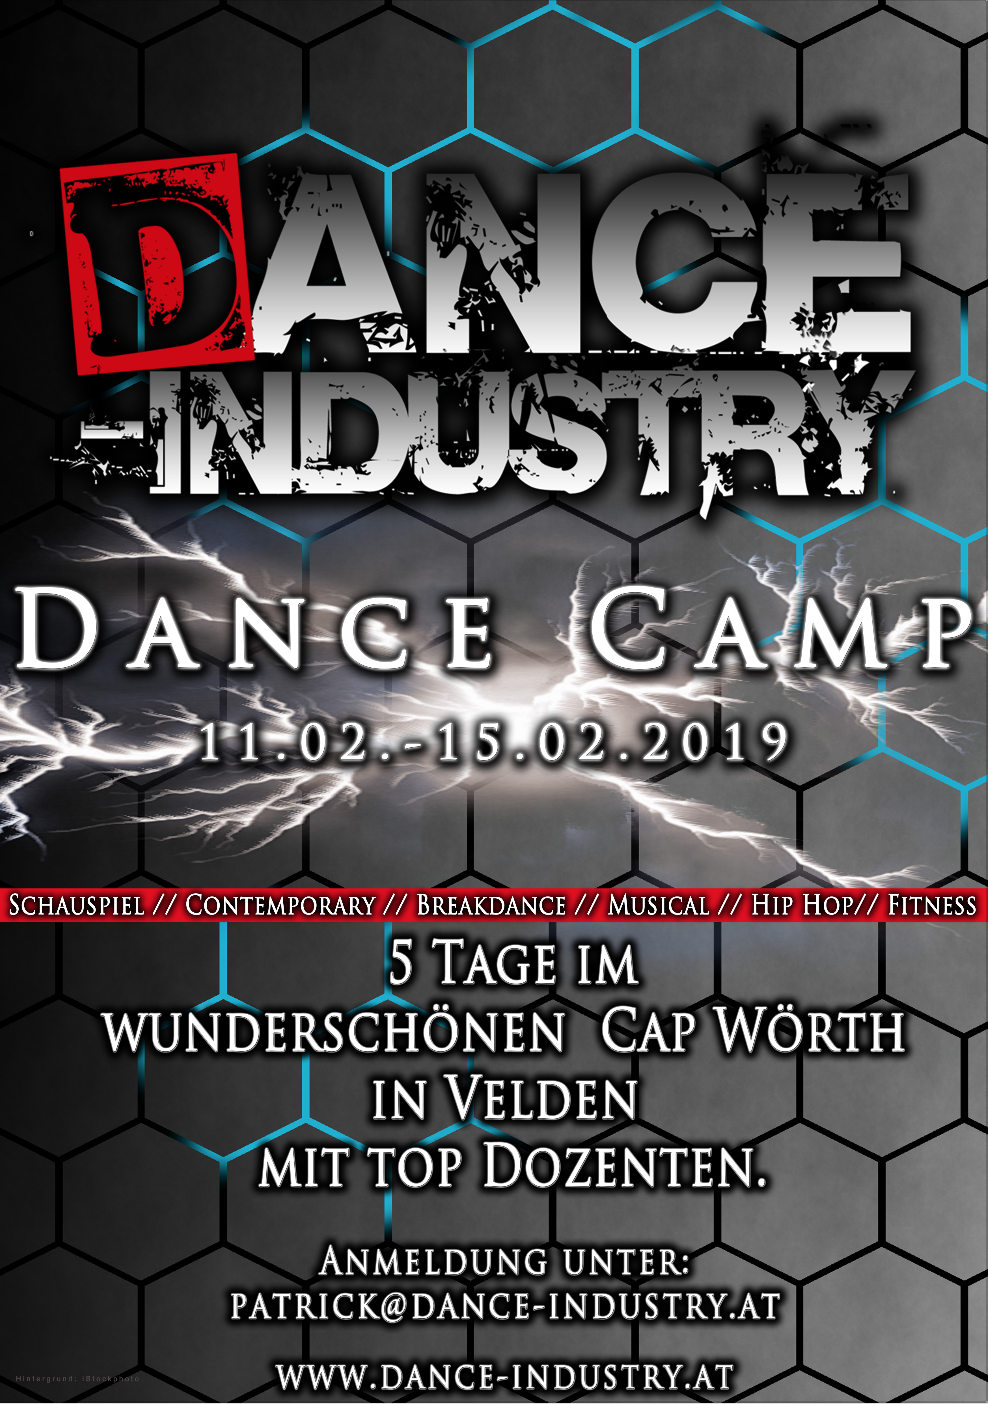 Dance Camp, Velden, Dance Industry